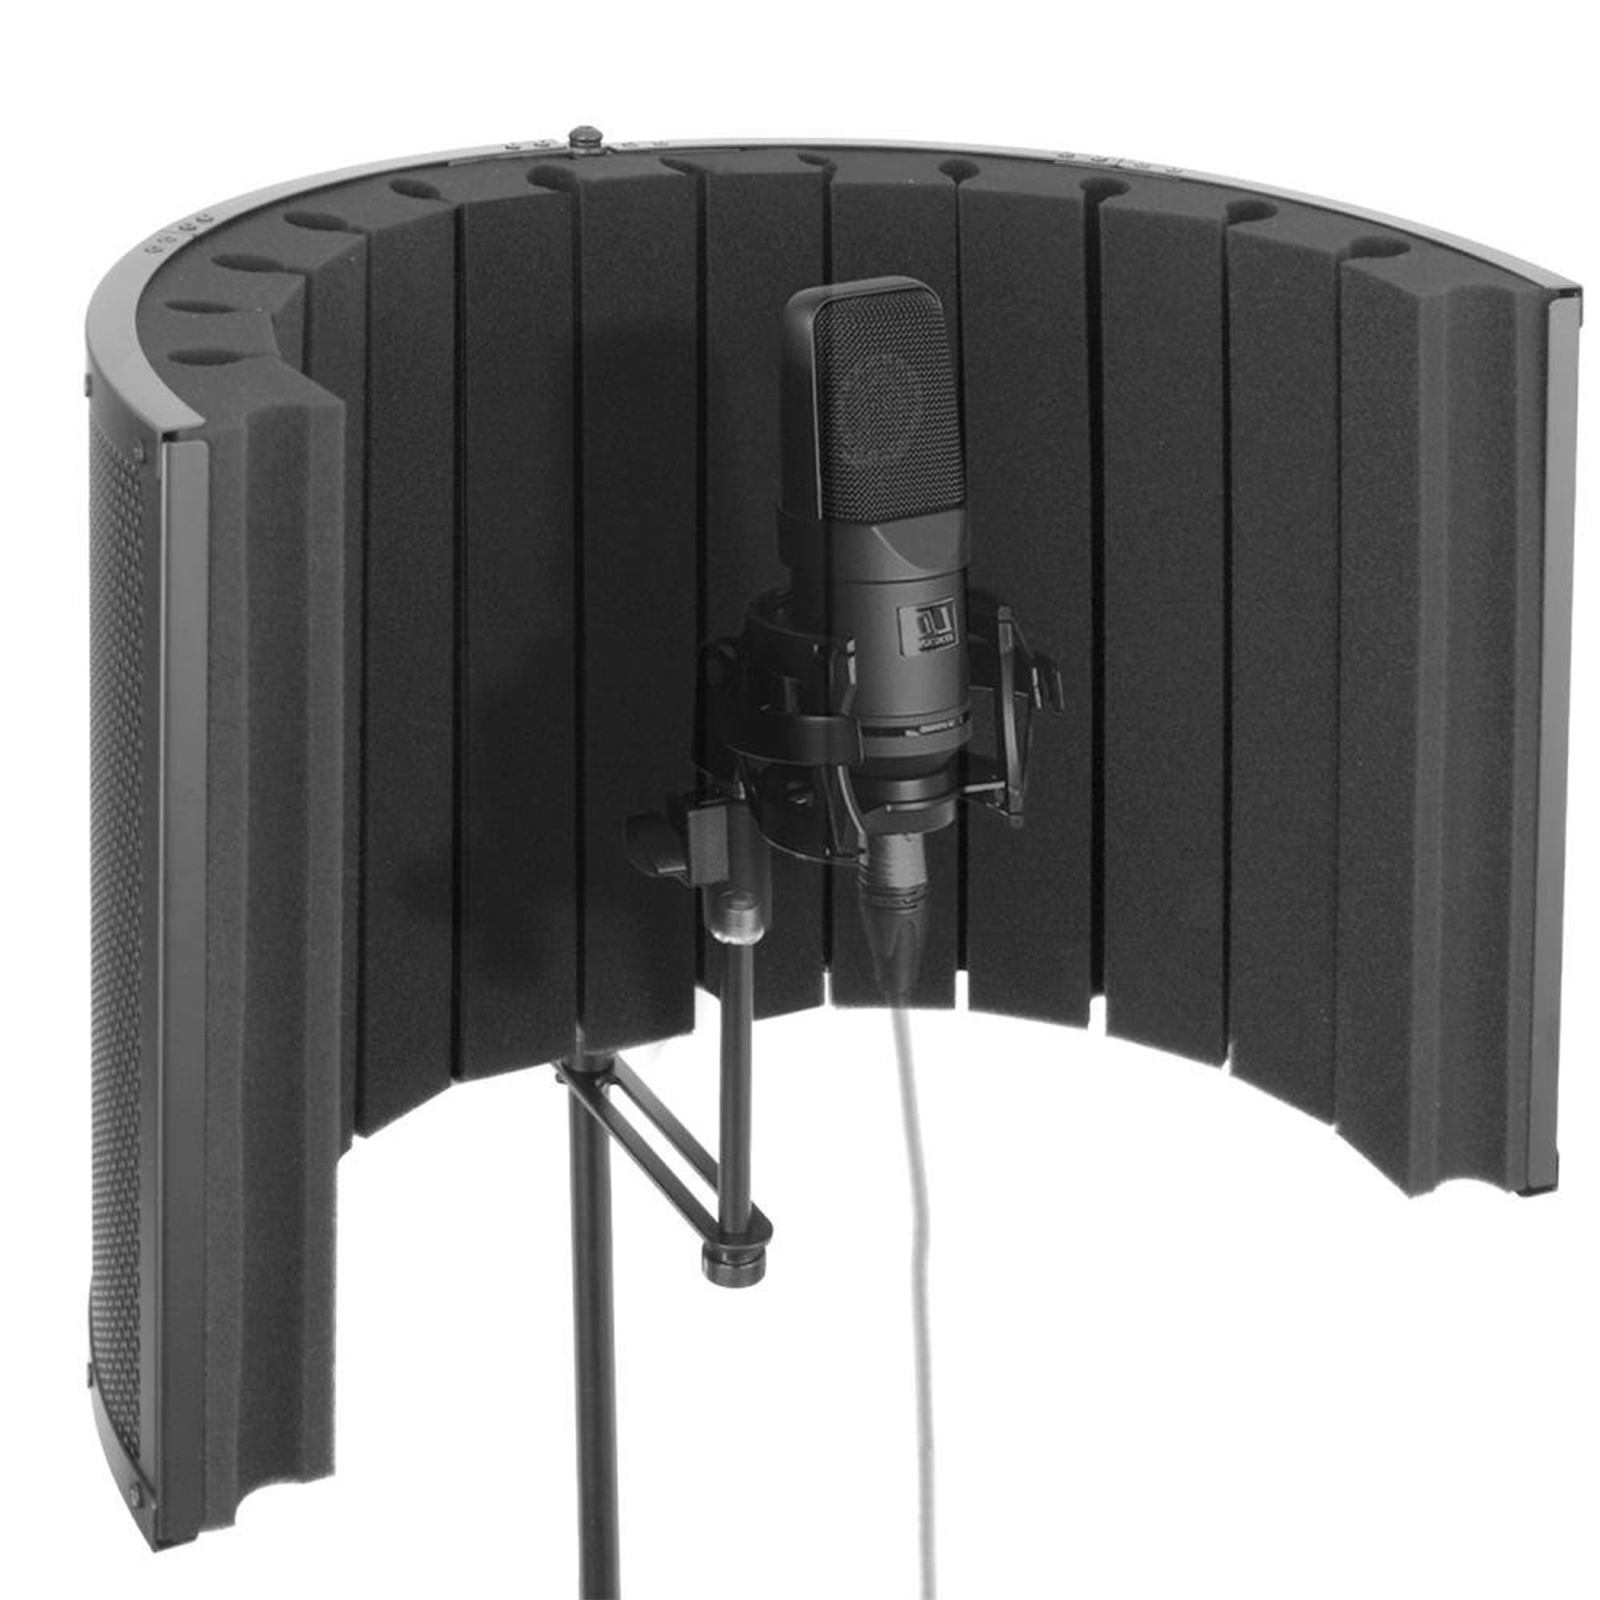 Pyle Mini Portable Vocal Recording Booth - Universal Standard Microphone with Isolat Noise Filter Reflect Shield for Recording Studio Quality Audio - Dual Acoustic Foam Soundproof Panel